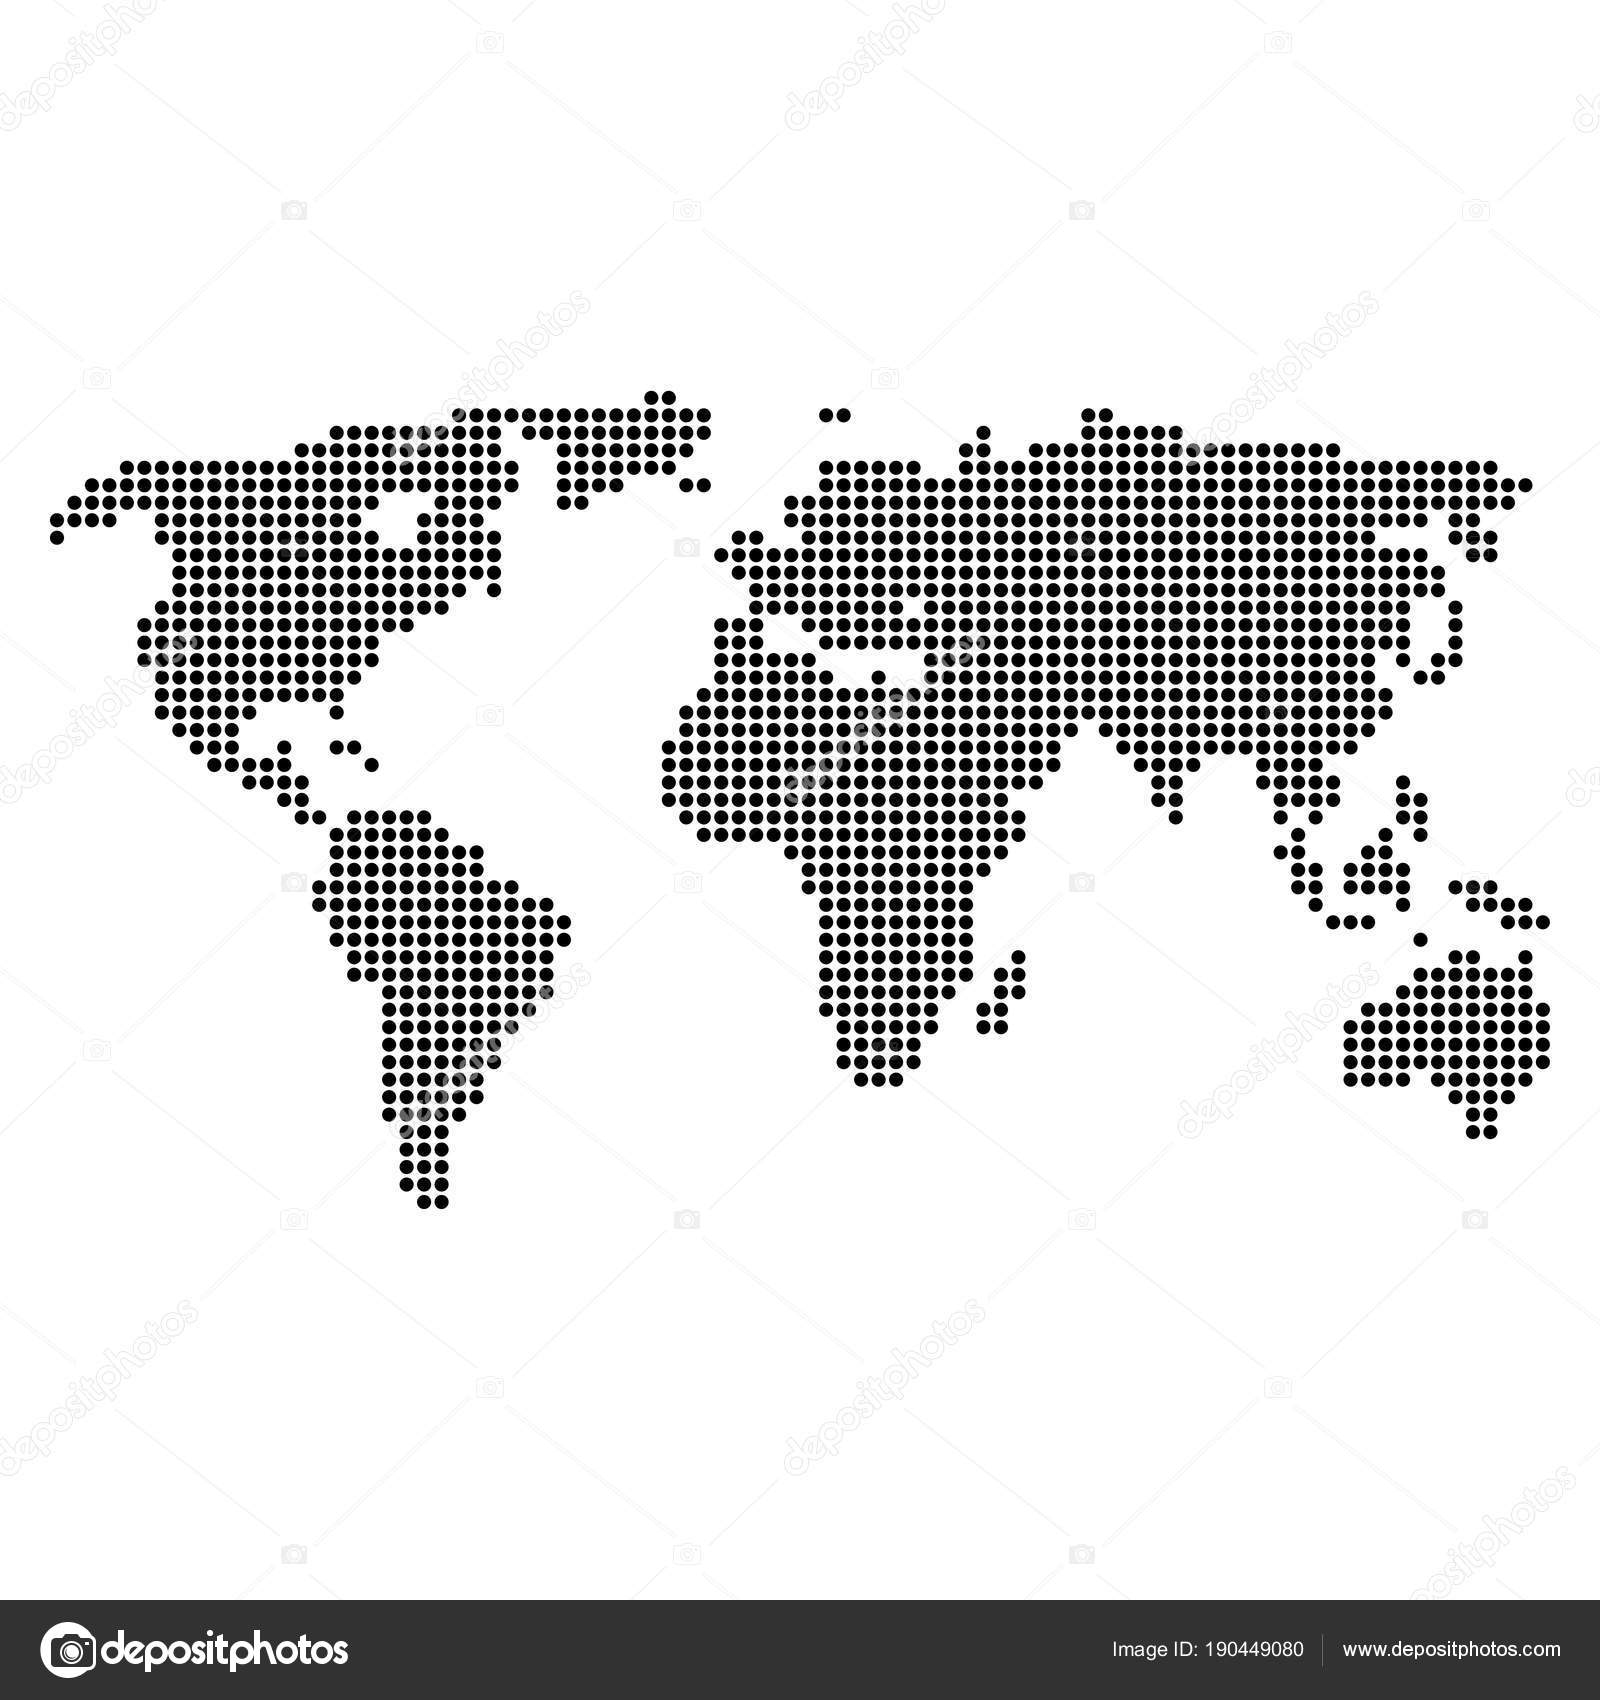 Dotted pixel world map stock vector ahasoft 190449080 dotted pixel world map stock vector gumiabroncs Choice Image